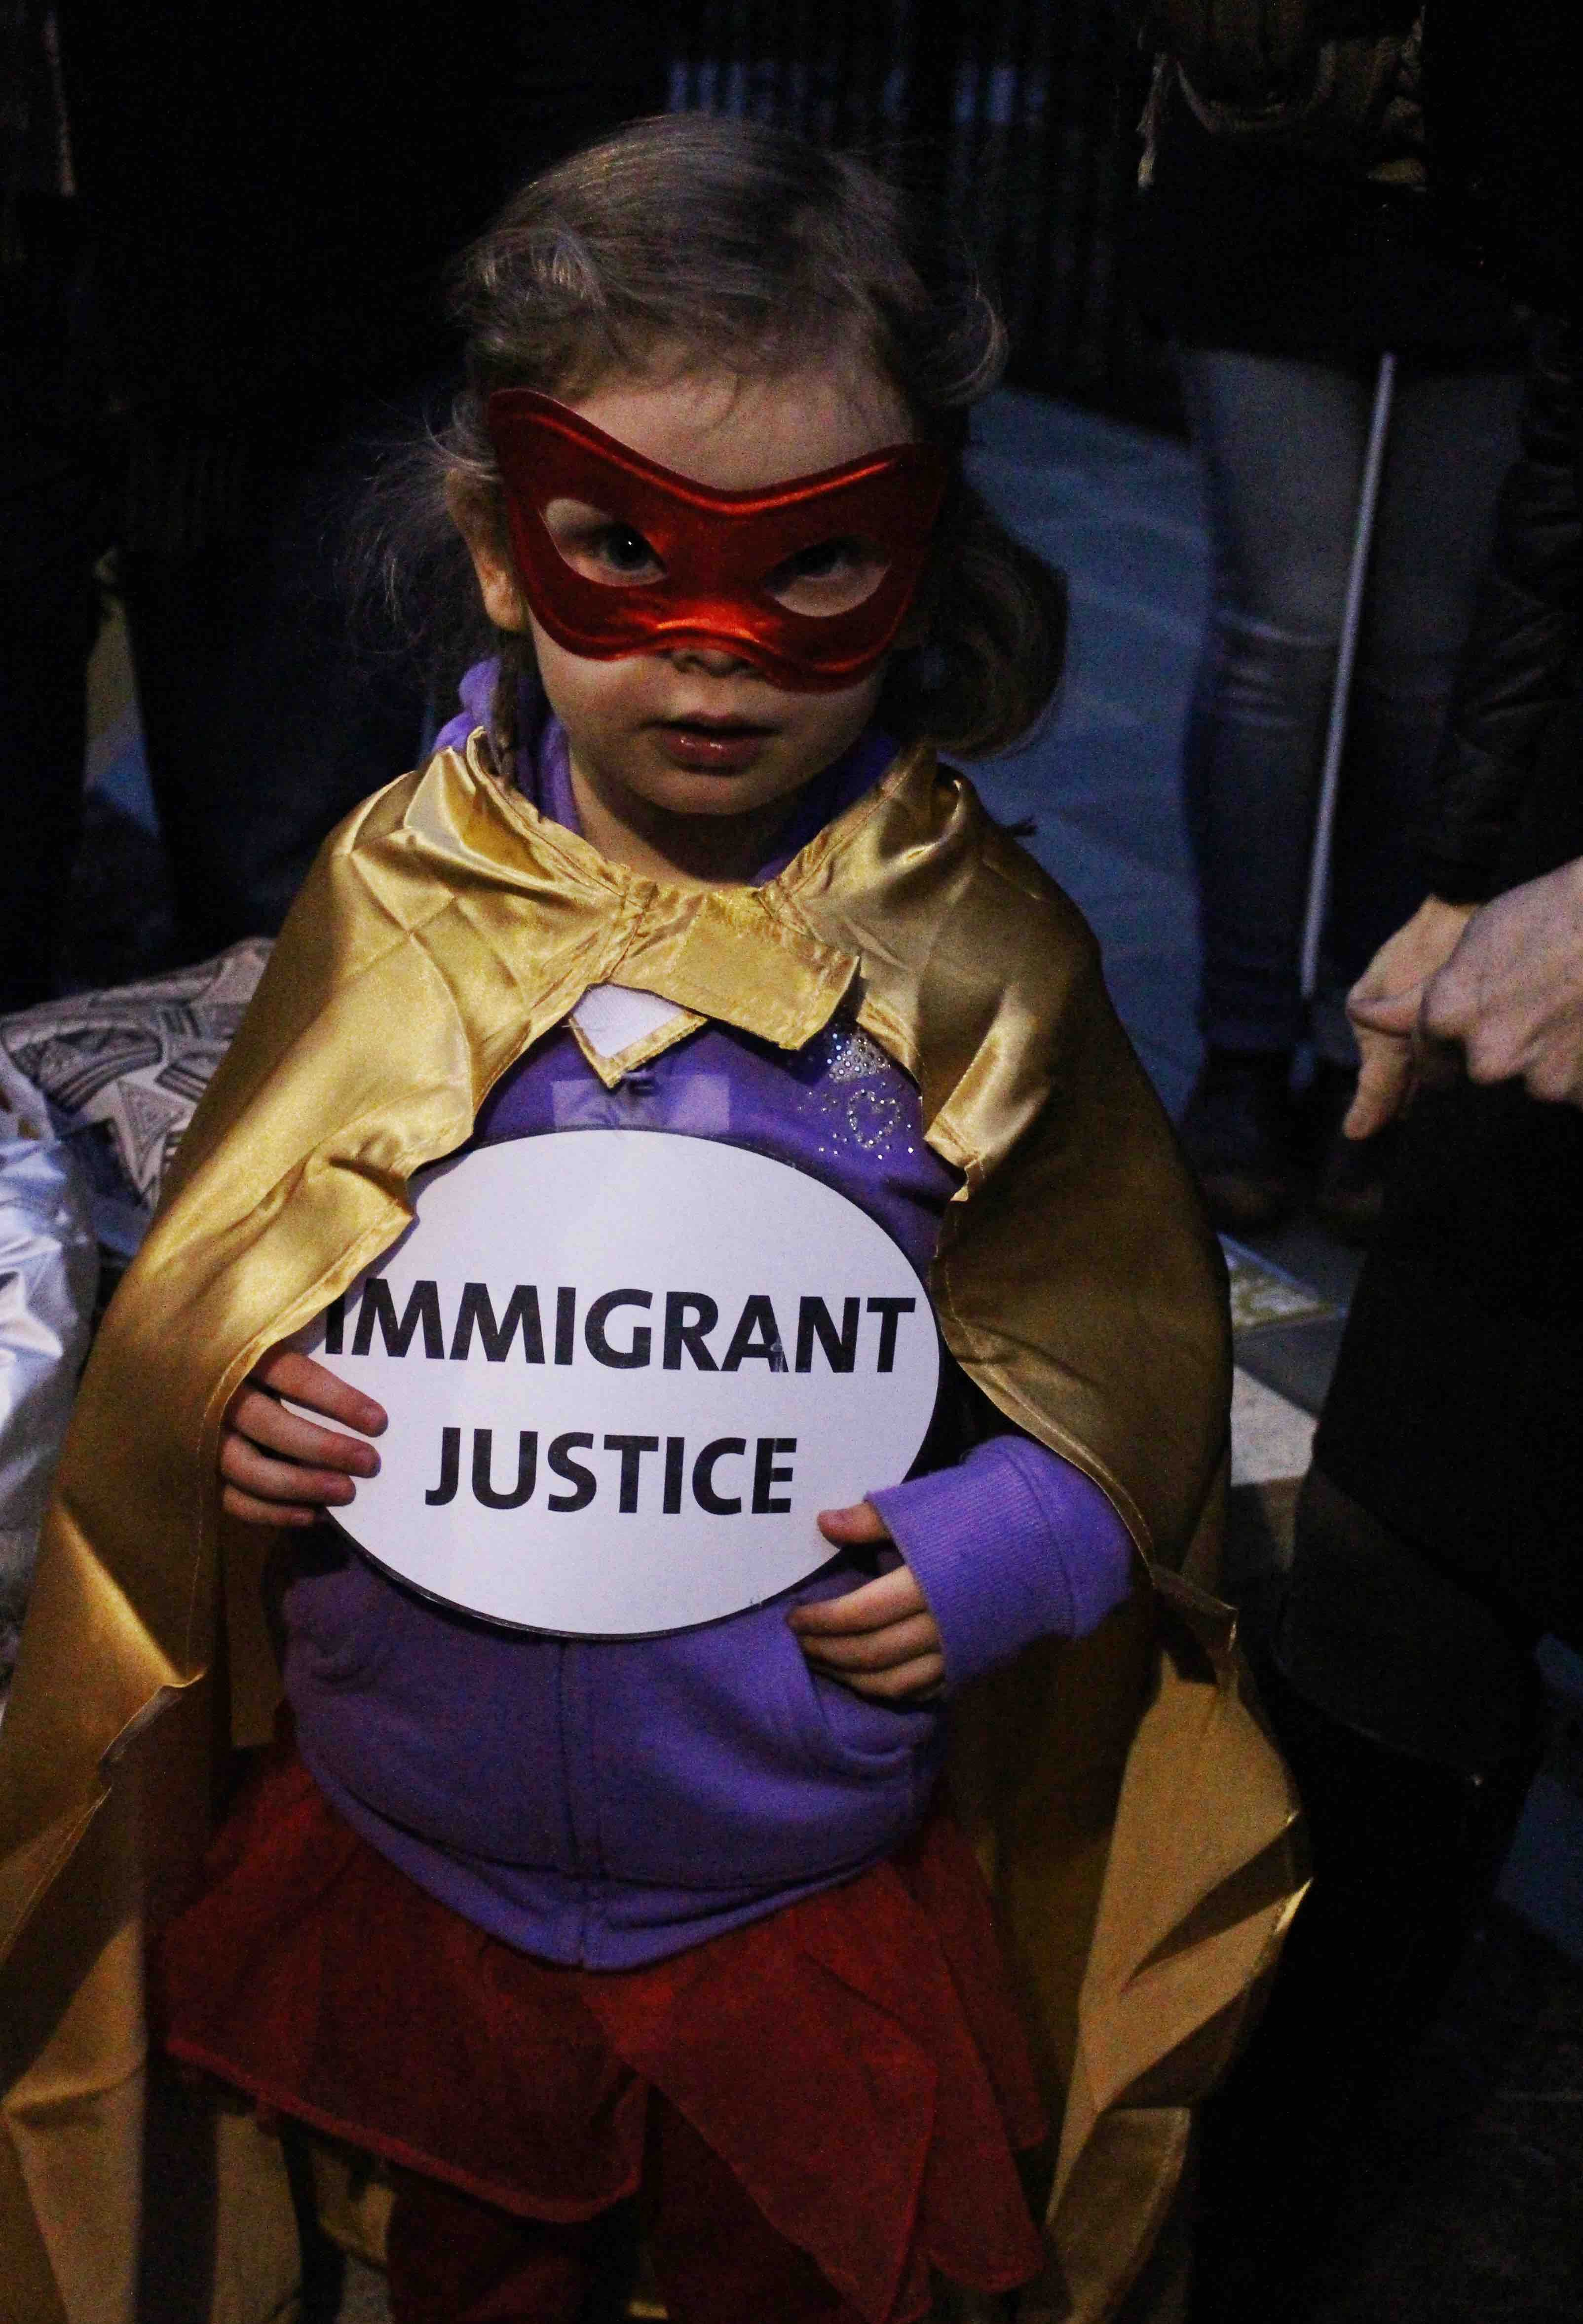 make DC and all cities sanctuary cities for all